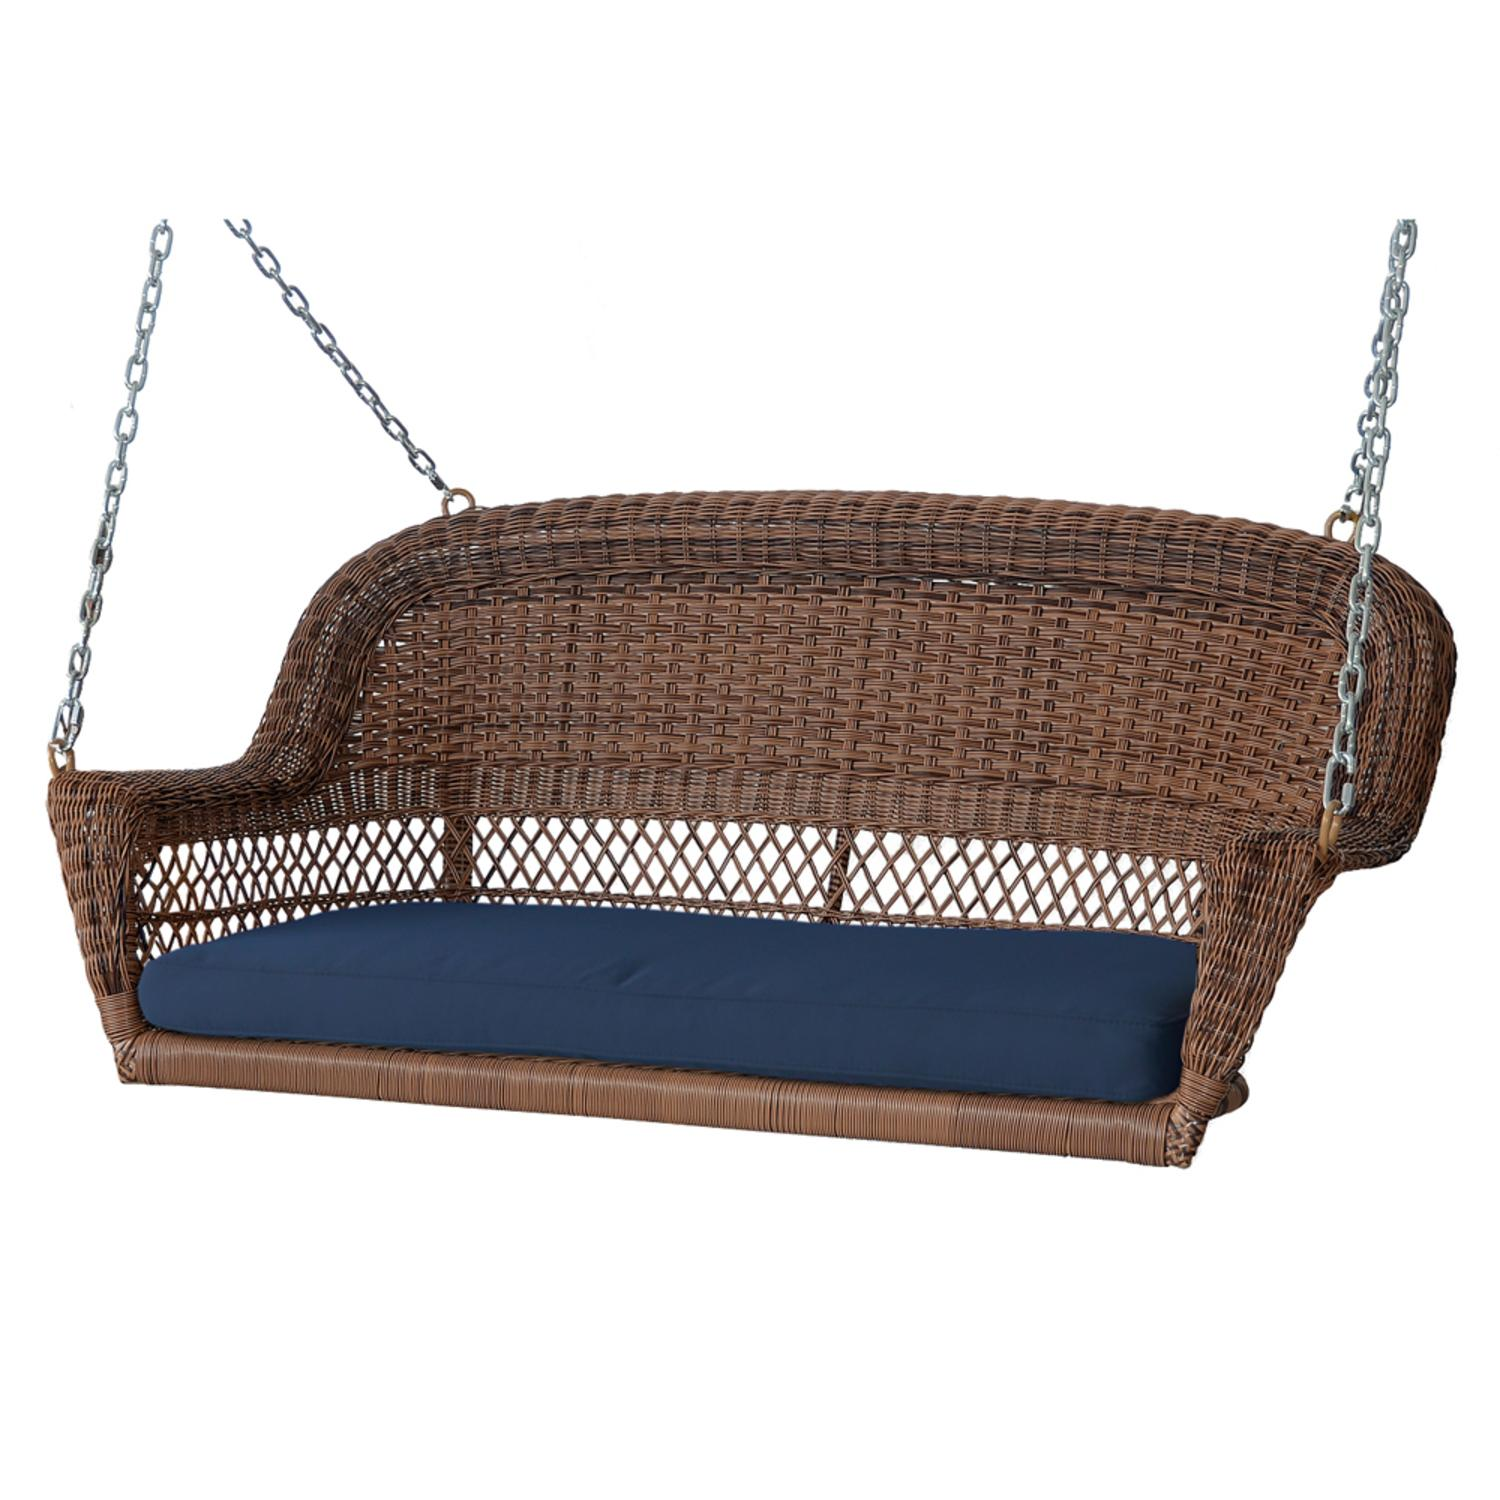 "51.5"" Hand Woven Honey Brown Resin Wicker Outdoor Porch Swing with Blue Cushion by CC Outdoor Living"